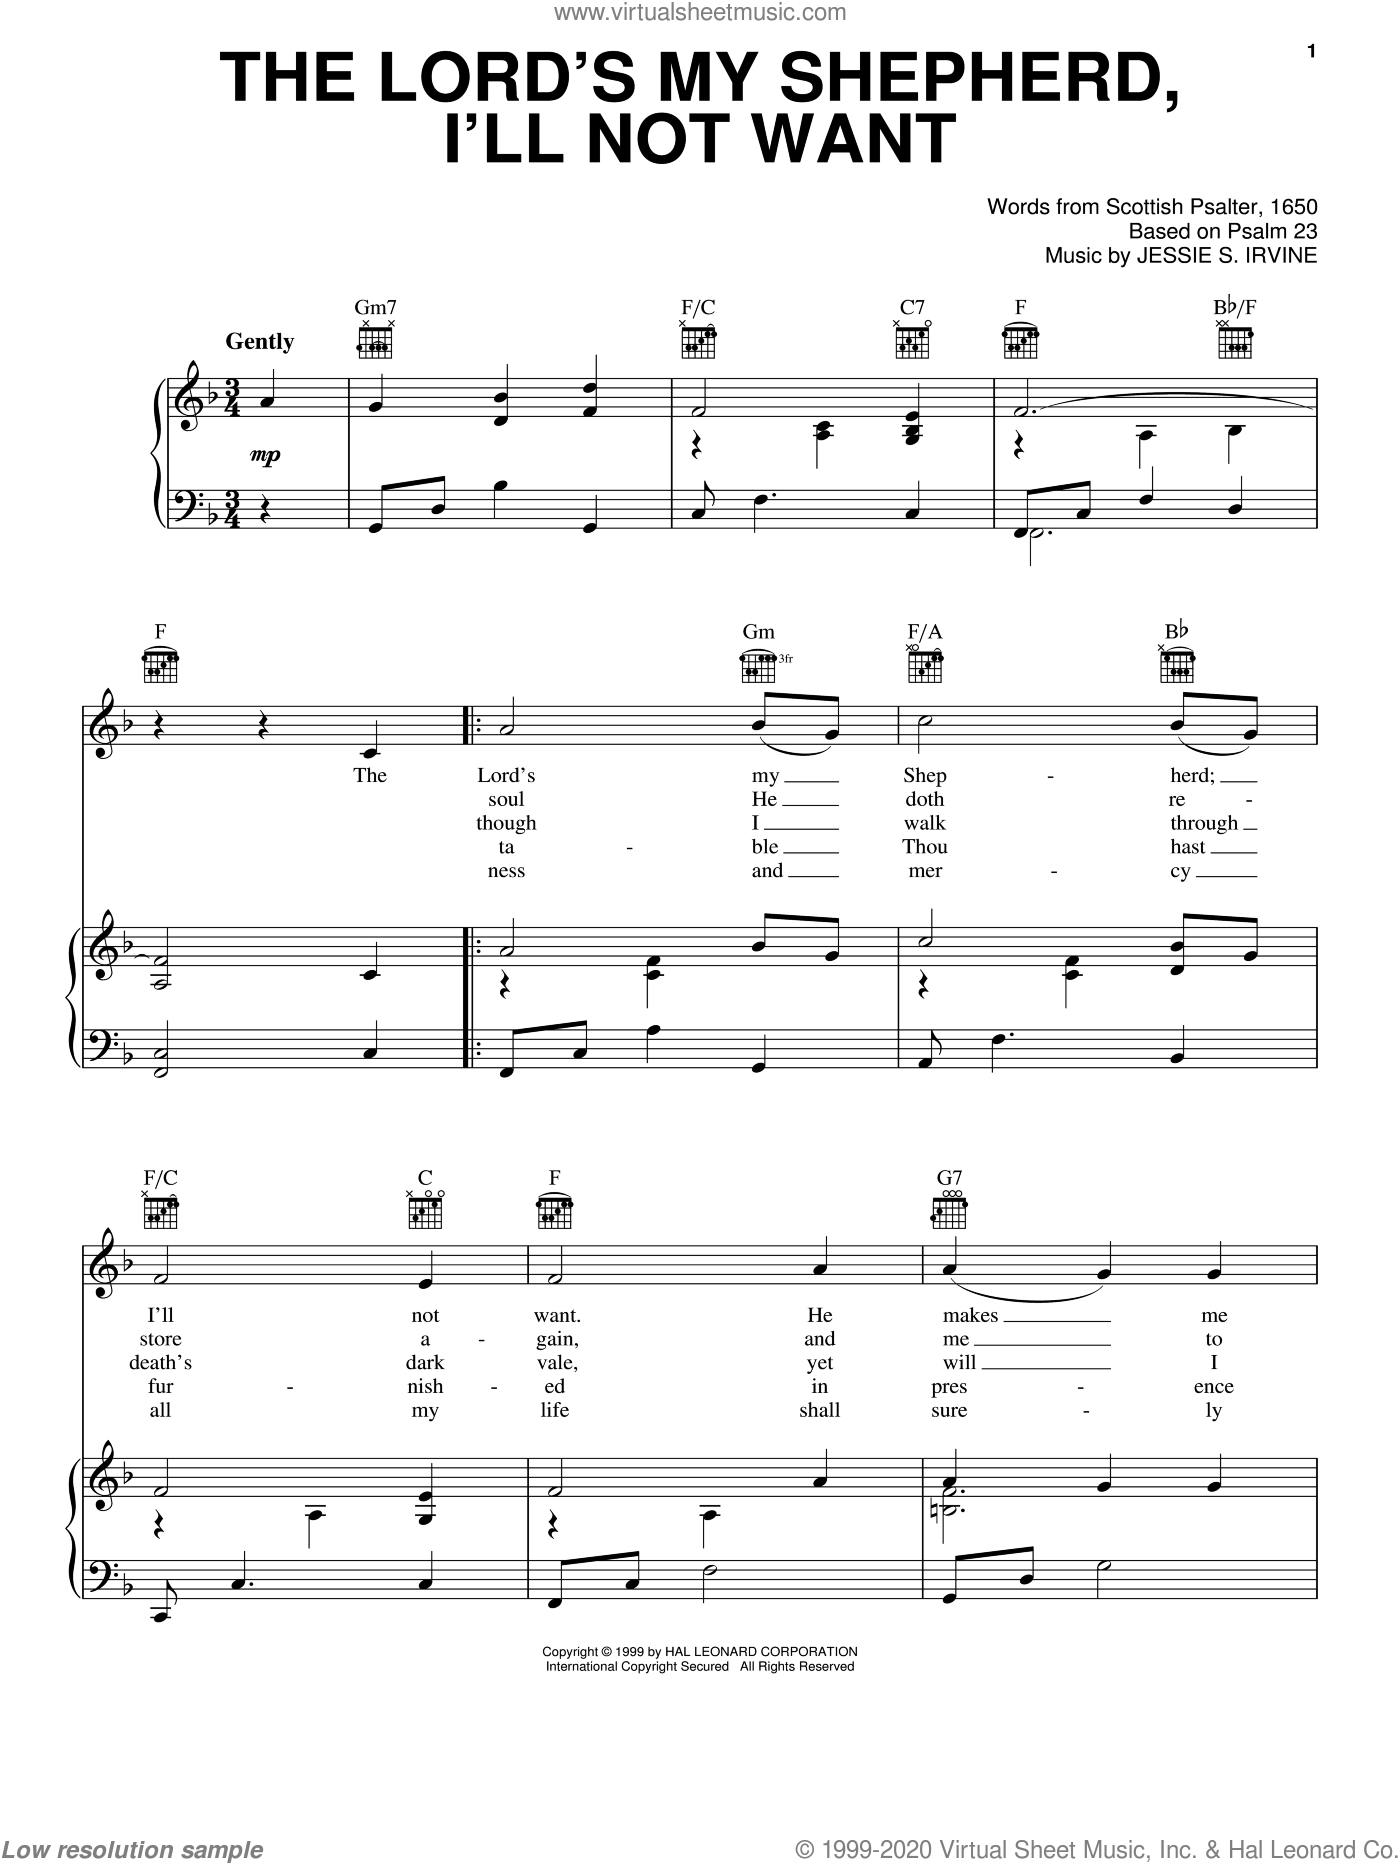 The Lord's My Shepherd, I'll Not Want sheet music for voice, piano or guitar by Jessie S. Irvine and Scottish Psalter, intermediate skill level